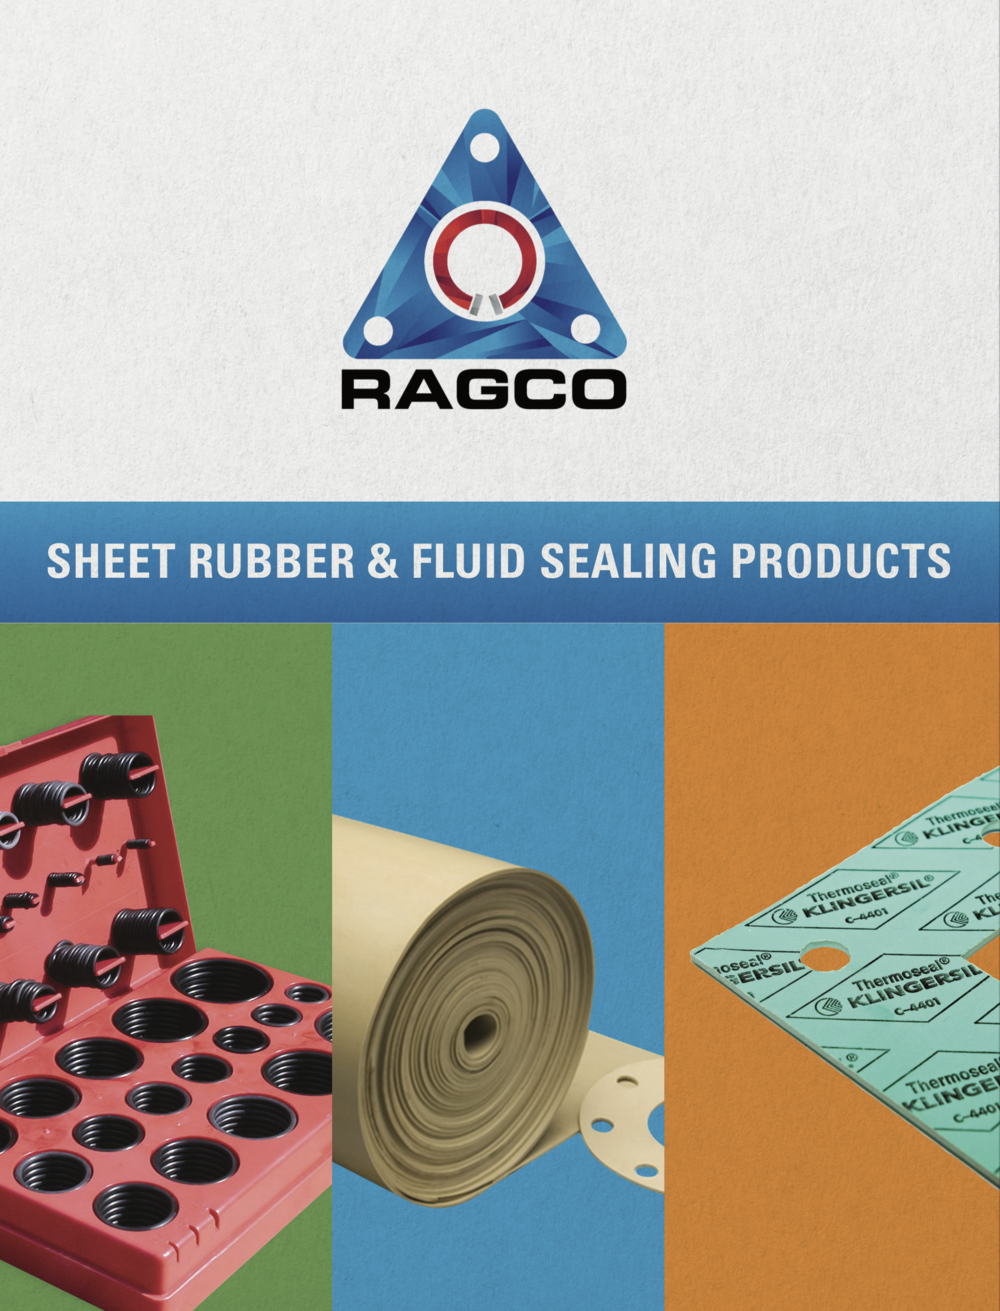 Sheet Rubber & Fluid Sealing